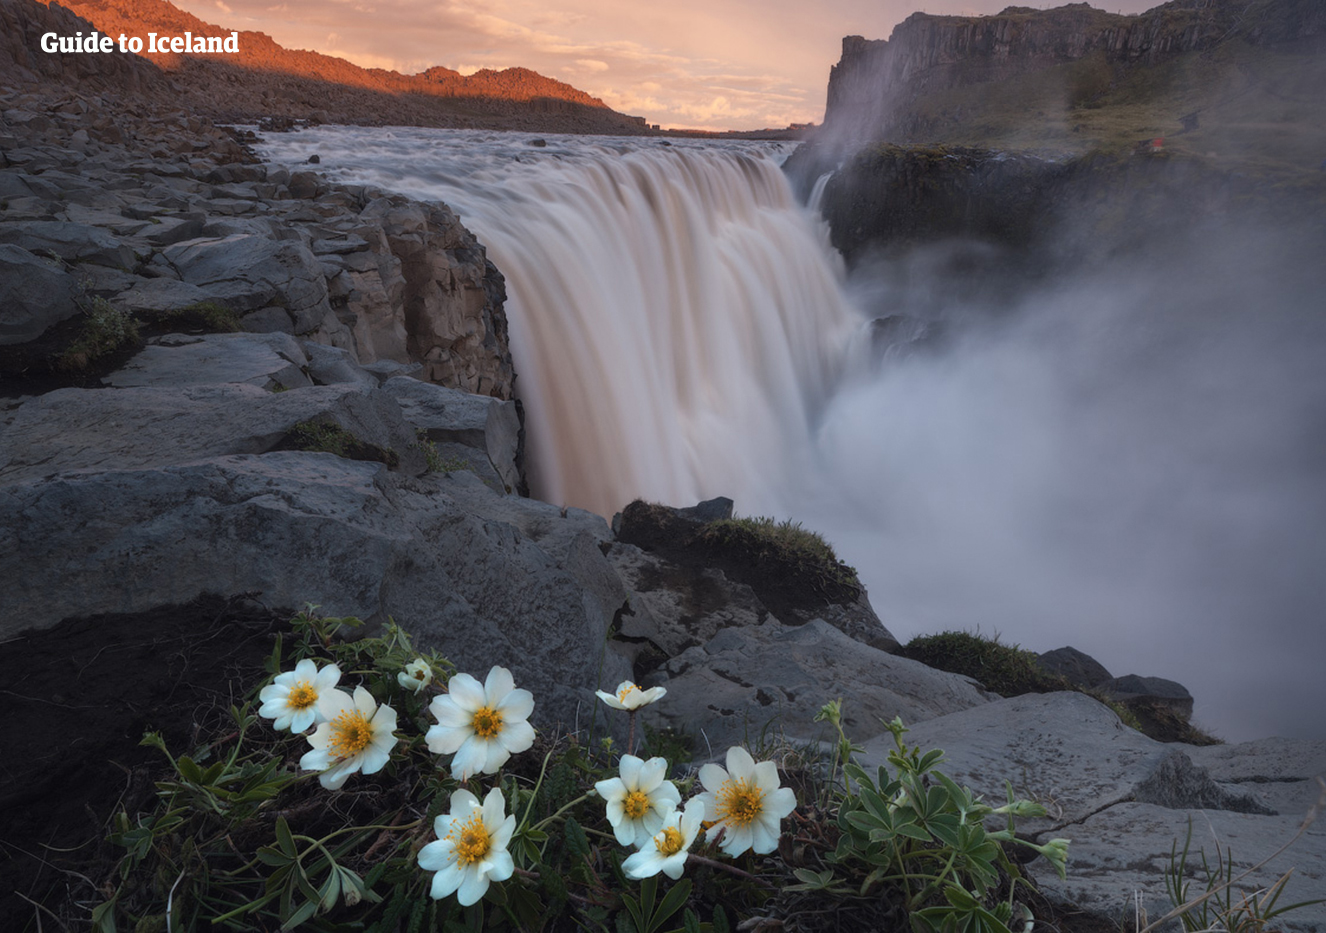 Mother Nature's incredible beauty and awesome power come together and form Dettifoss waterfall.